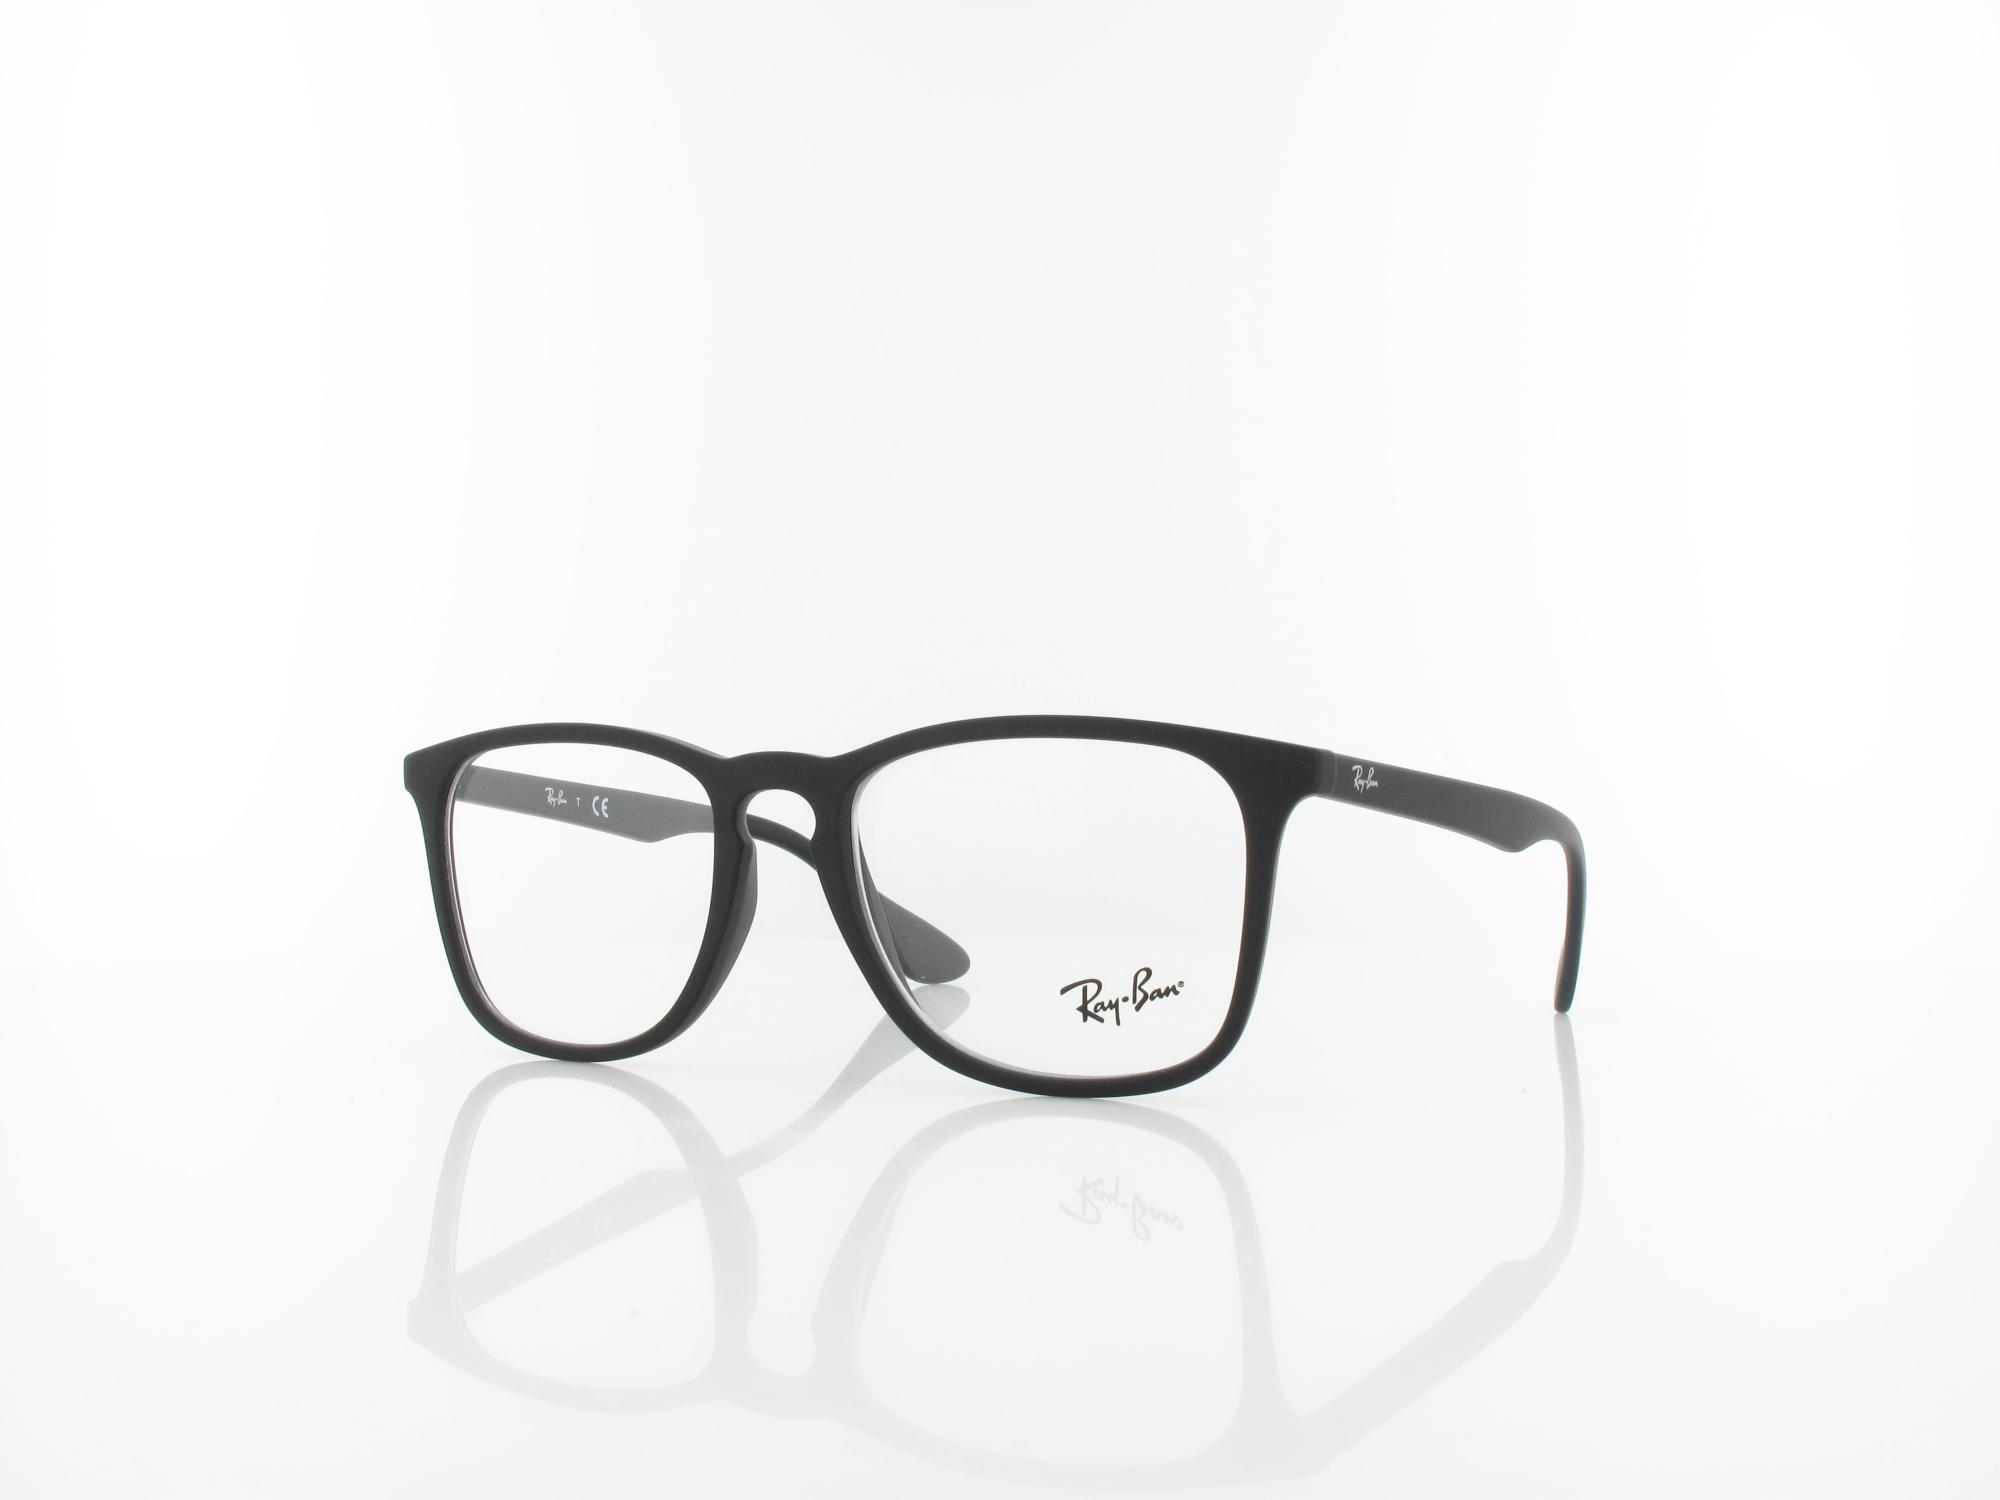 Ray Ban | RX7074 5364 52 | rubber black